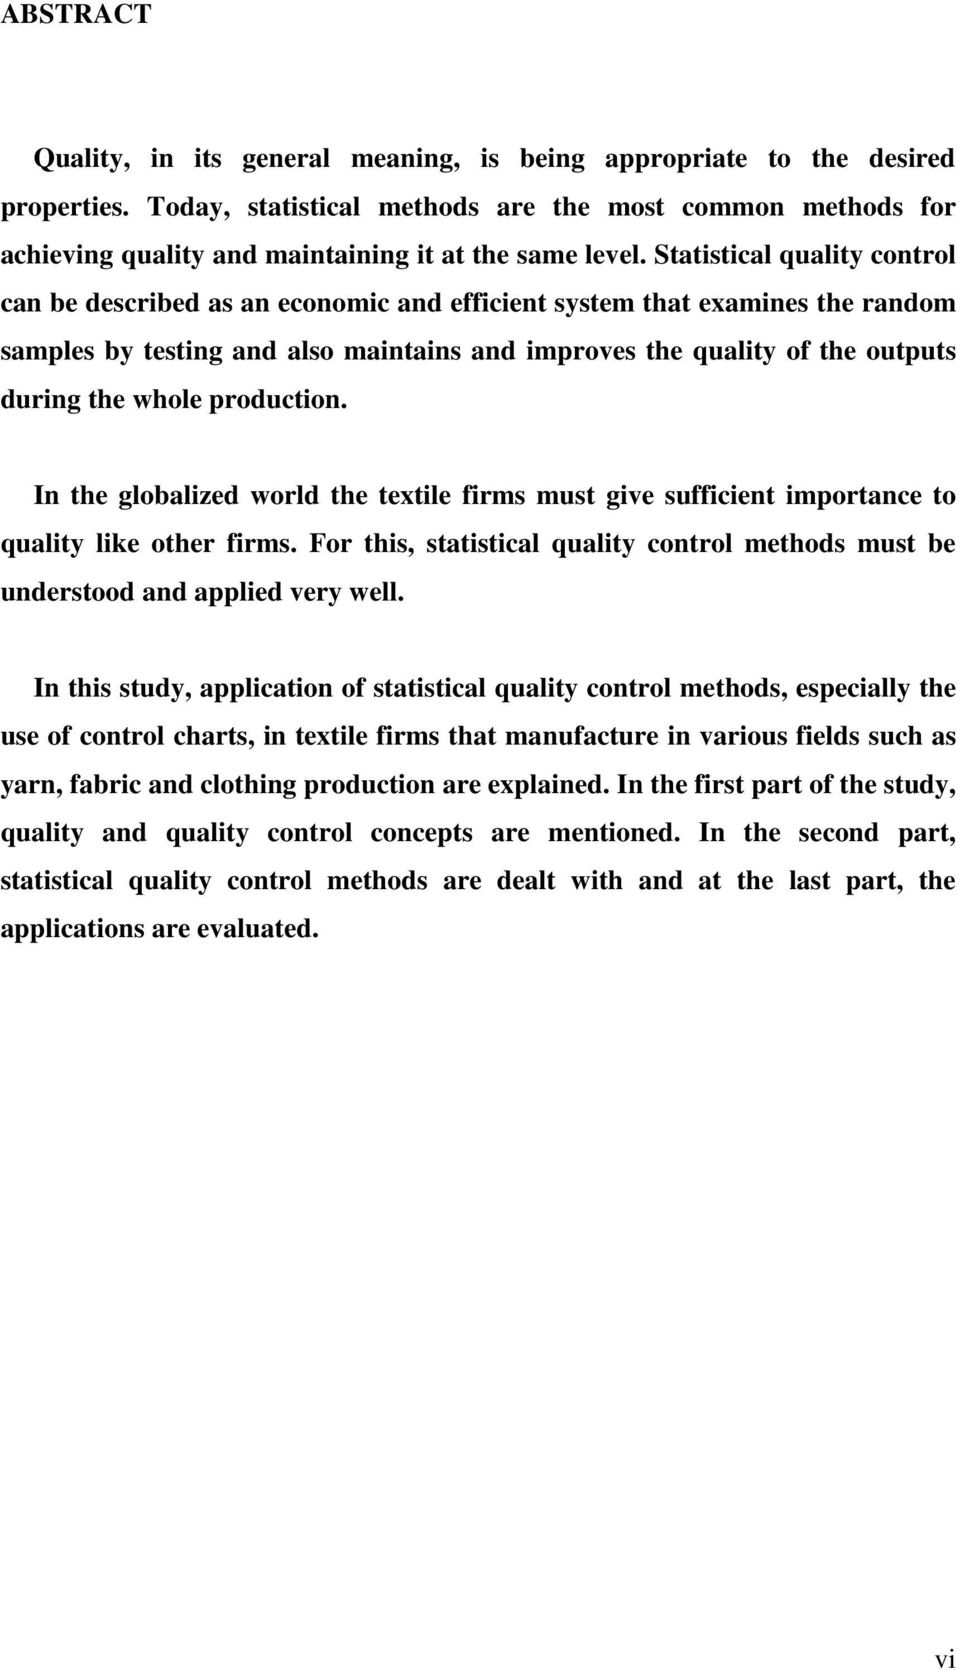 Statistical quality control can be described as an economic and efficient system that examines the random samples by testing and also maintains and improves the quality of the outputs during the